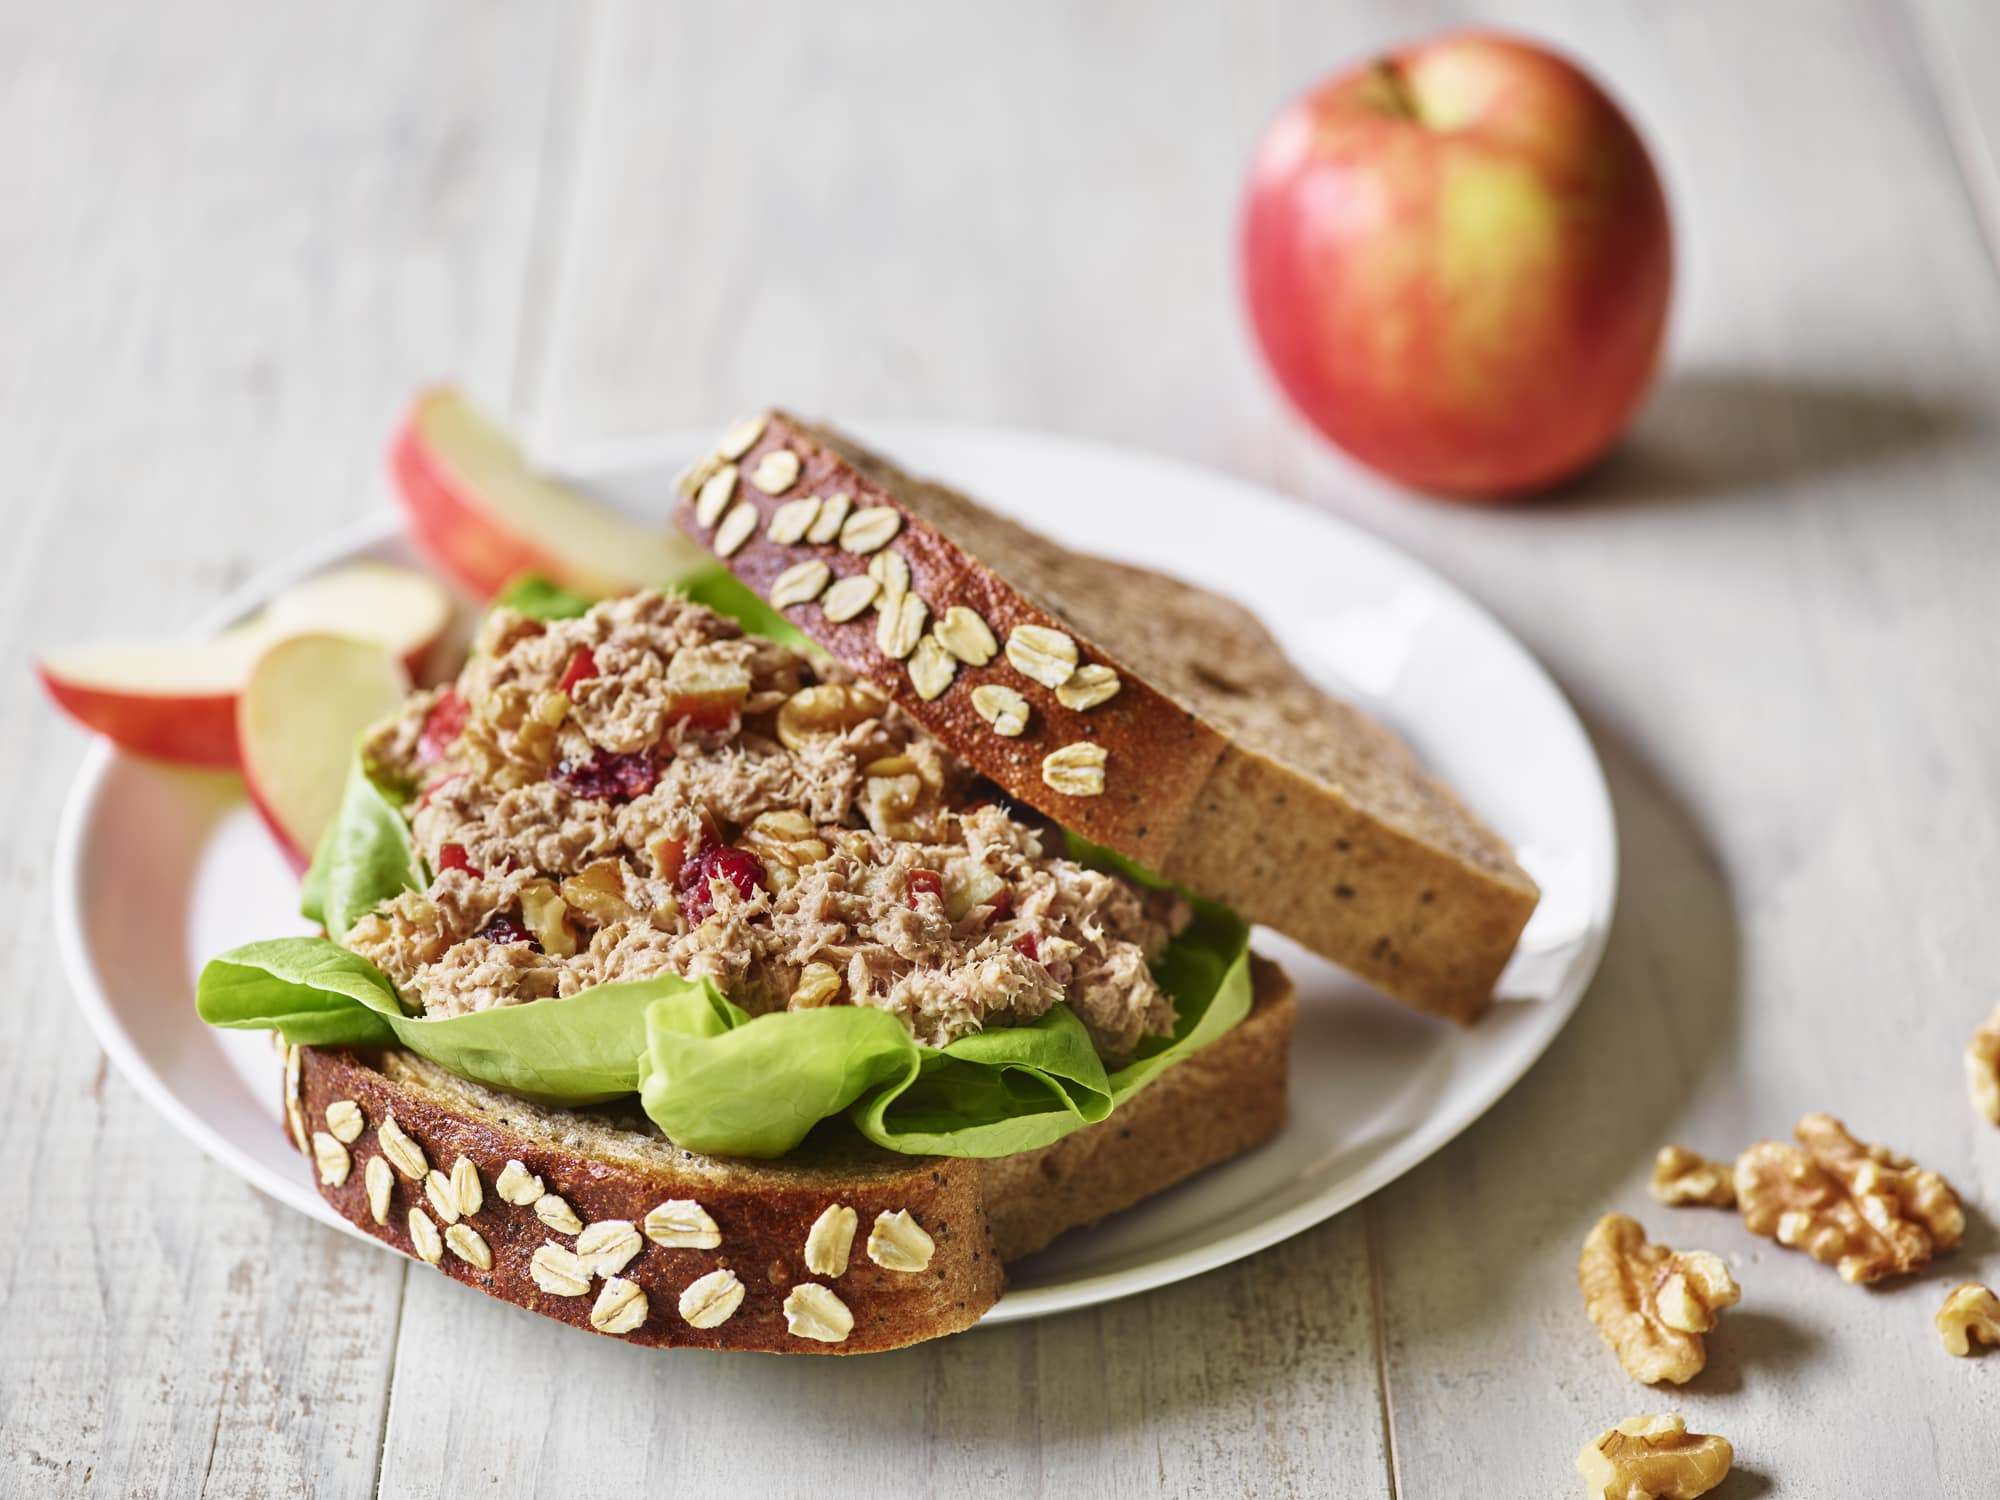 Tuna Salad Sandwich with Apples and Walnuts